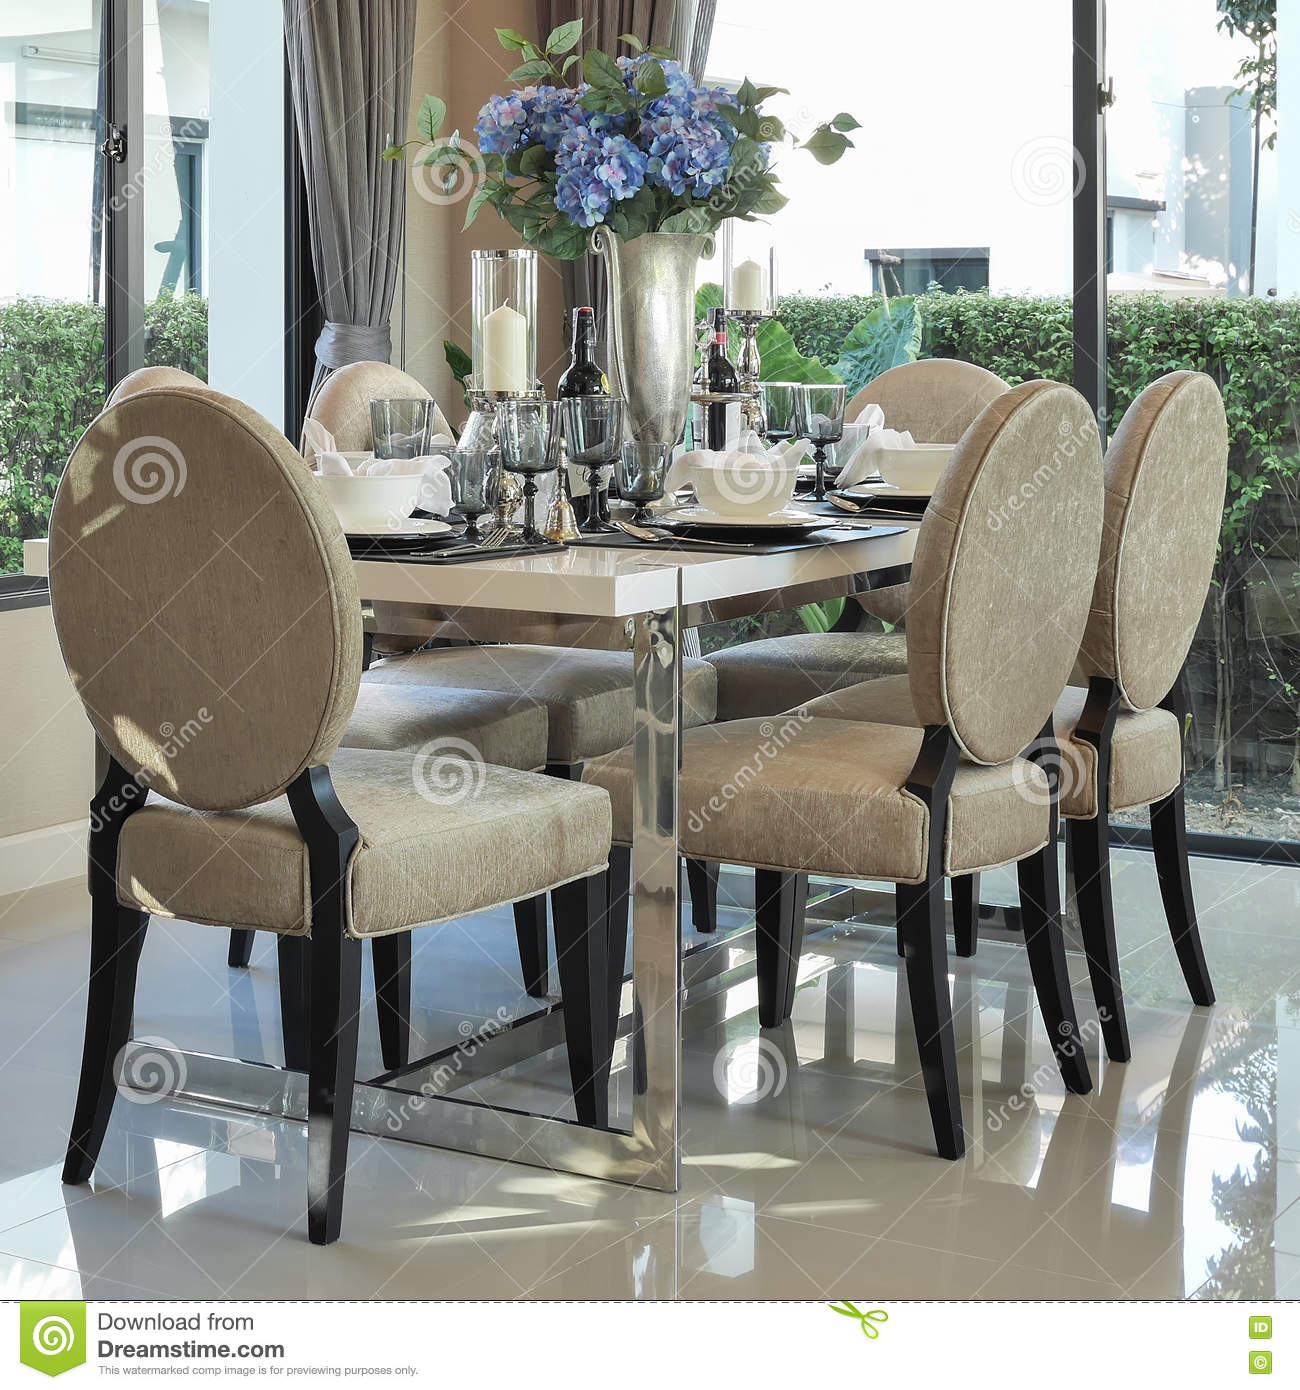 dining table and comfortable chairs with elegant table